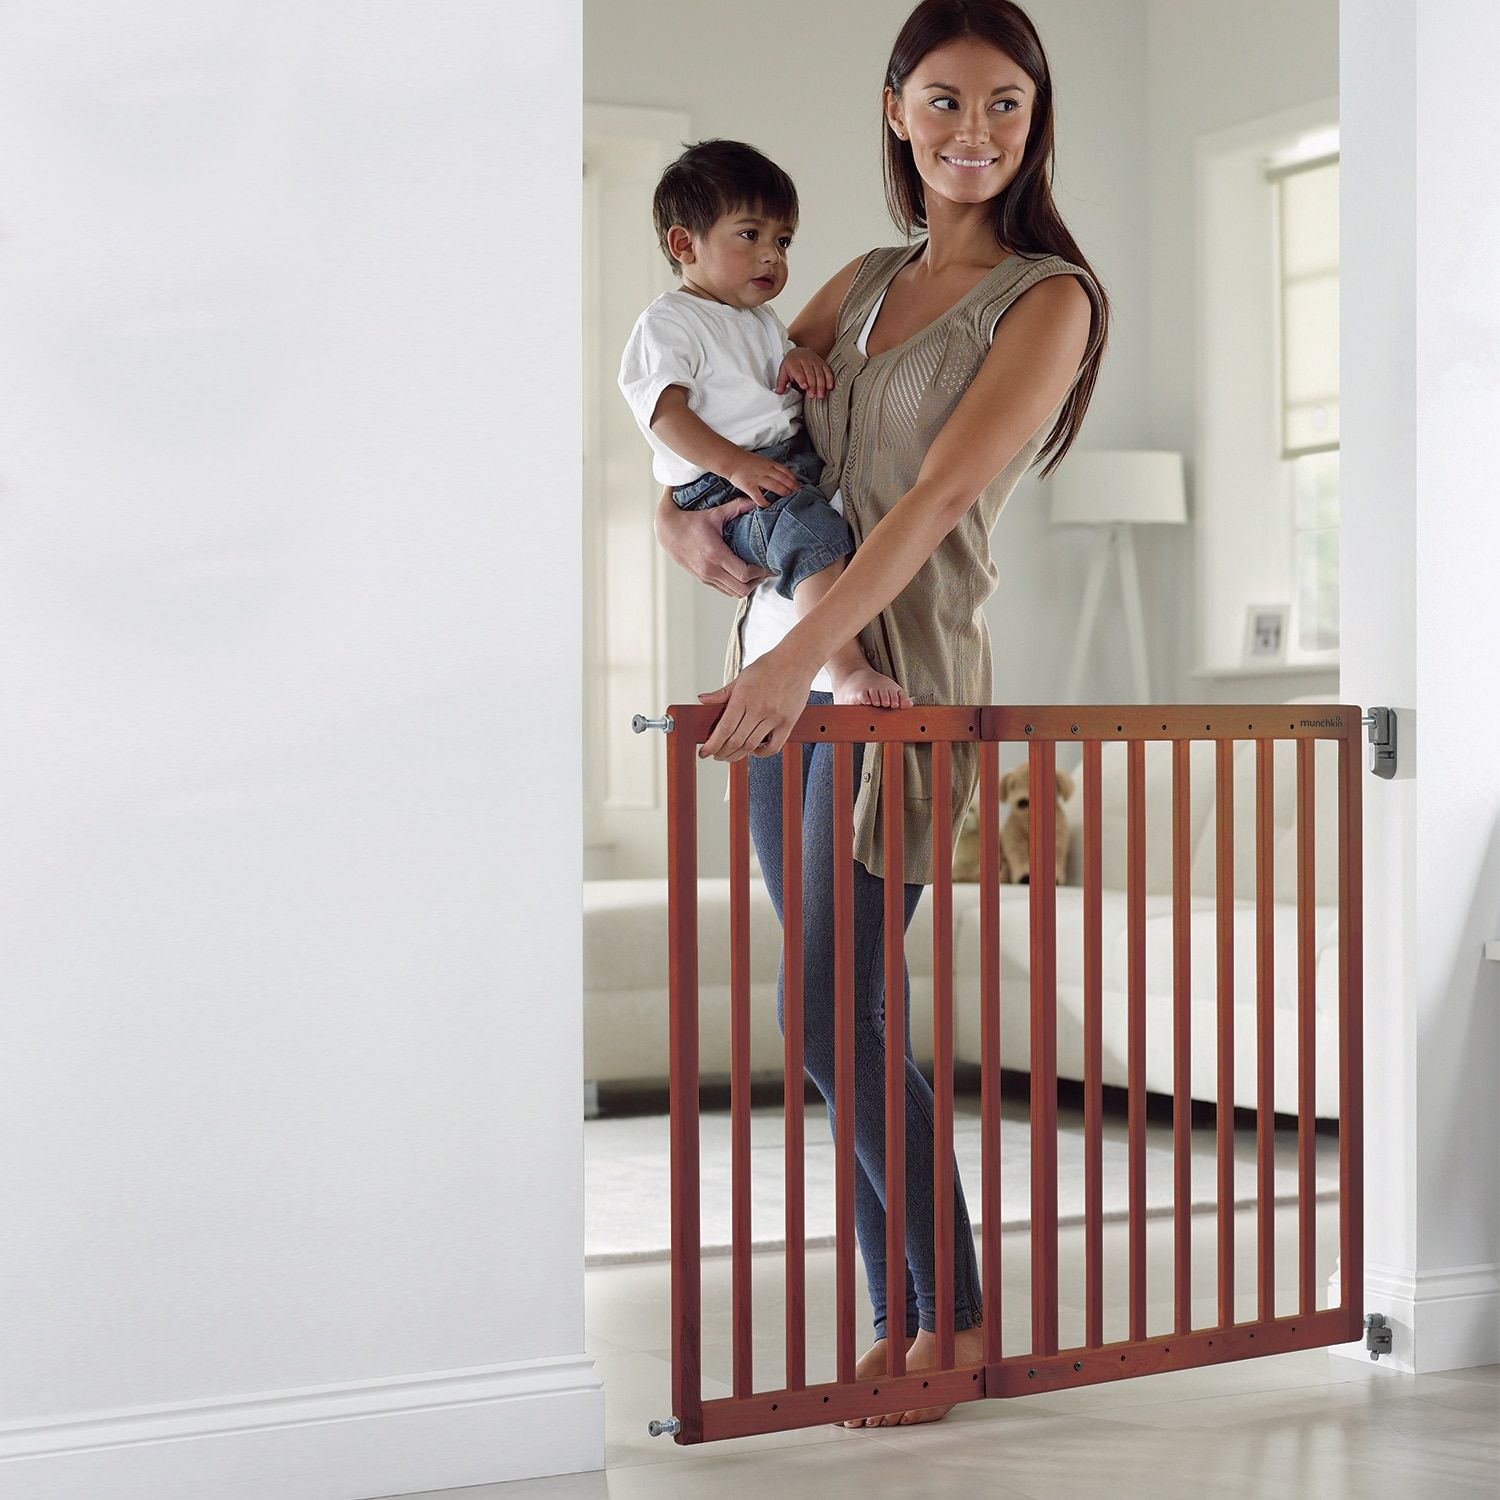 Extending Wood Baby Gate Wood baby gate, Baby gates